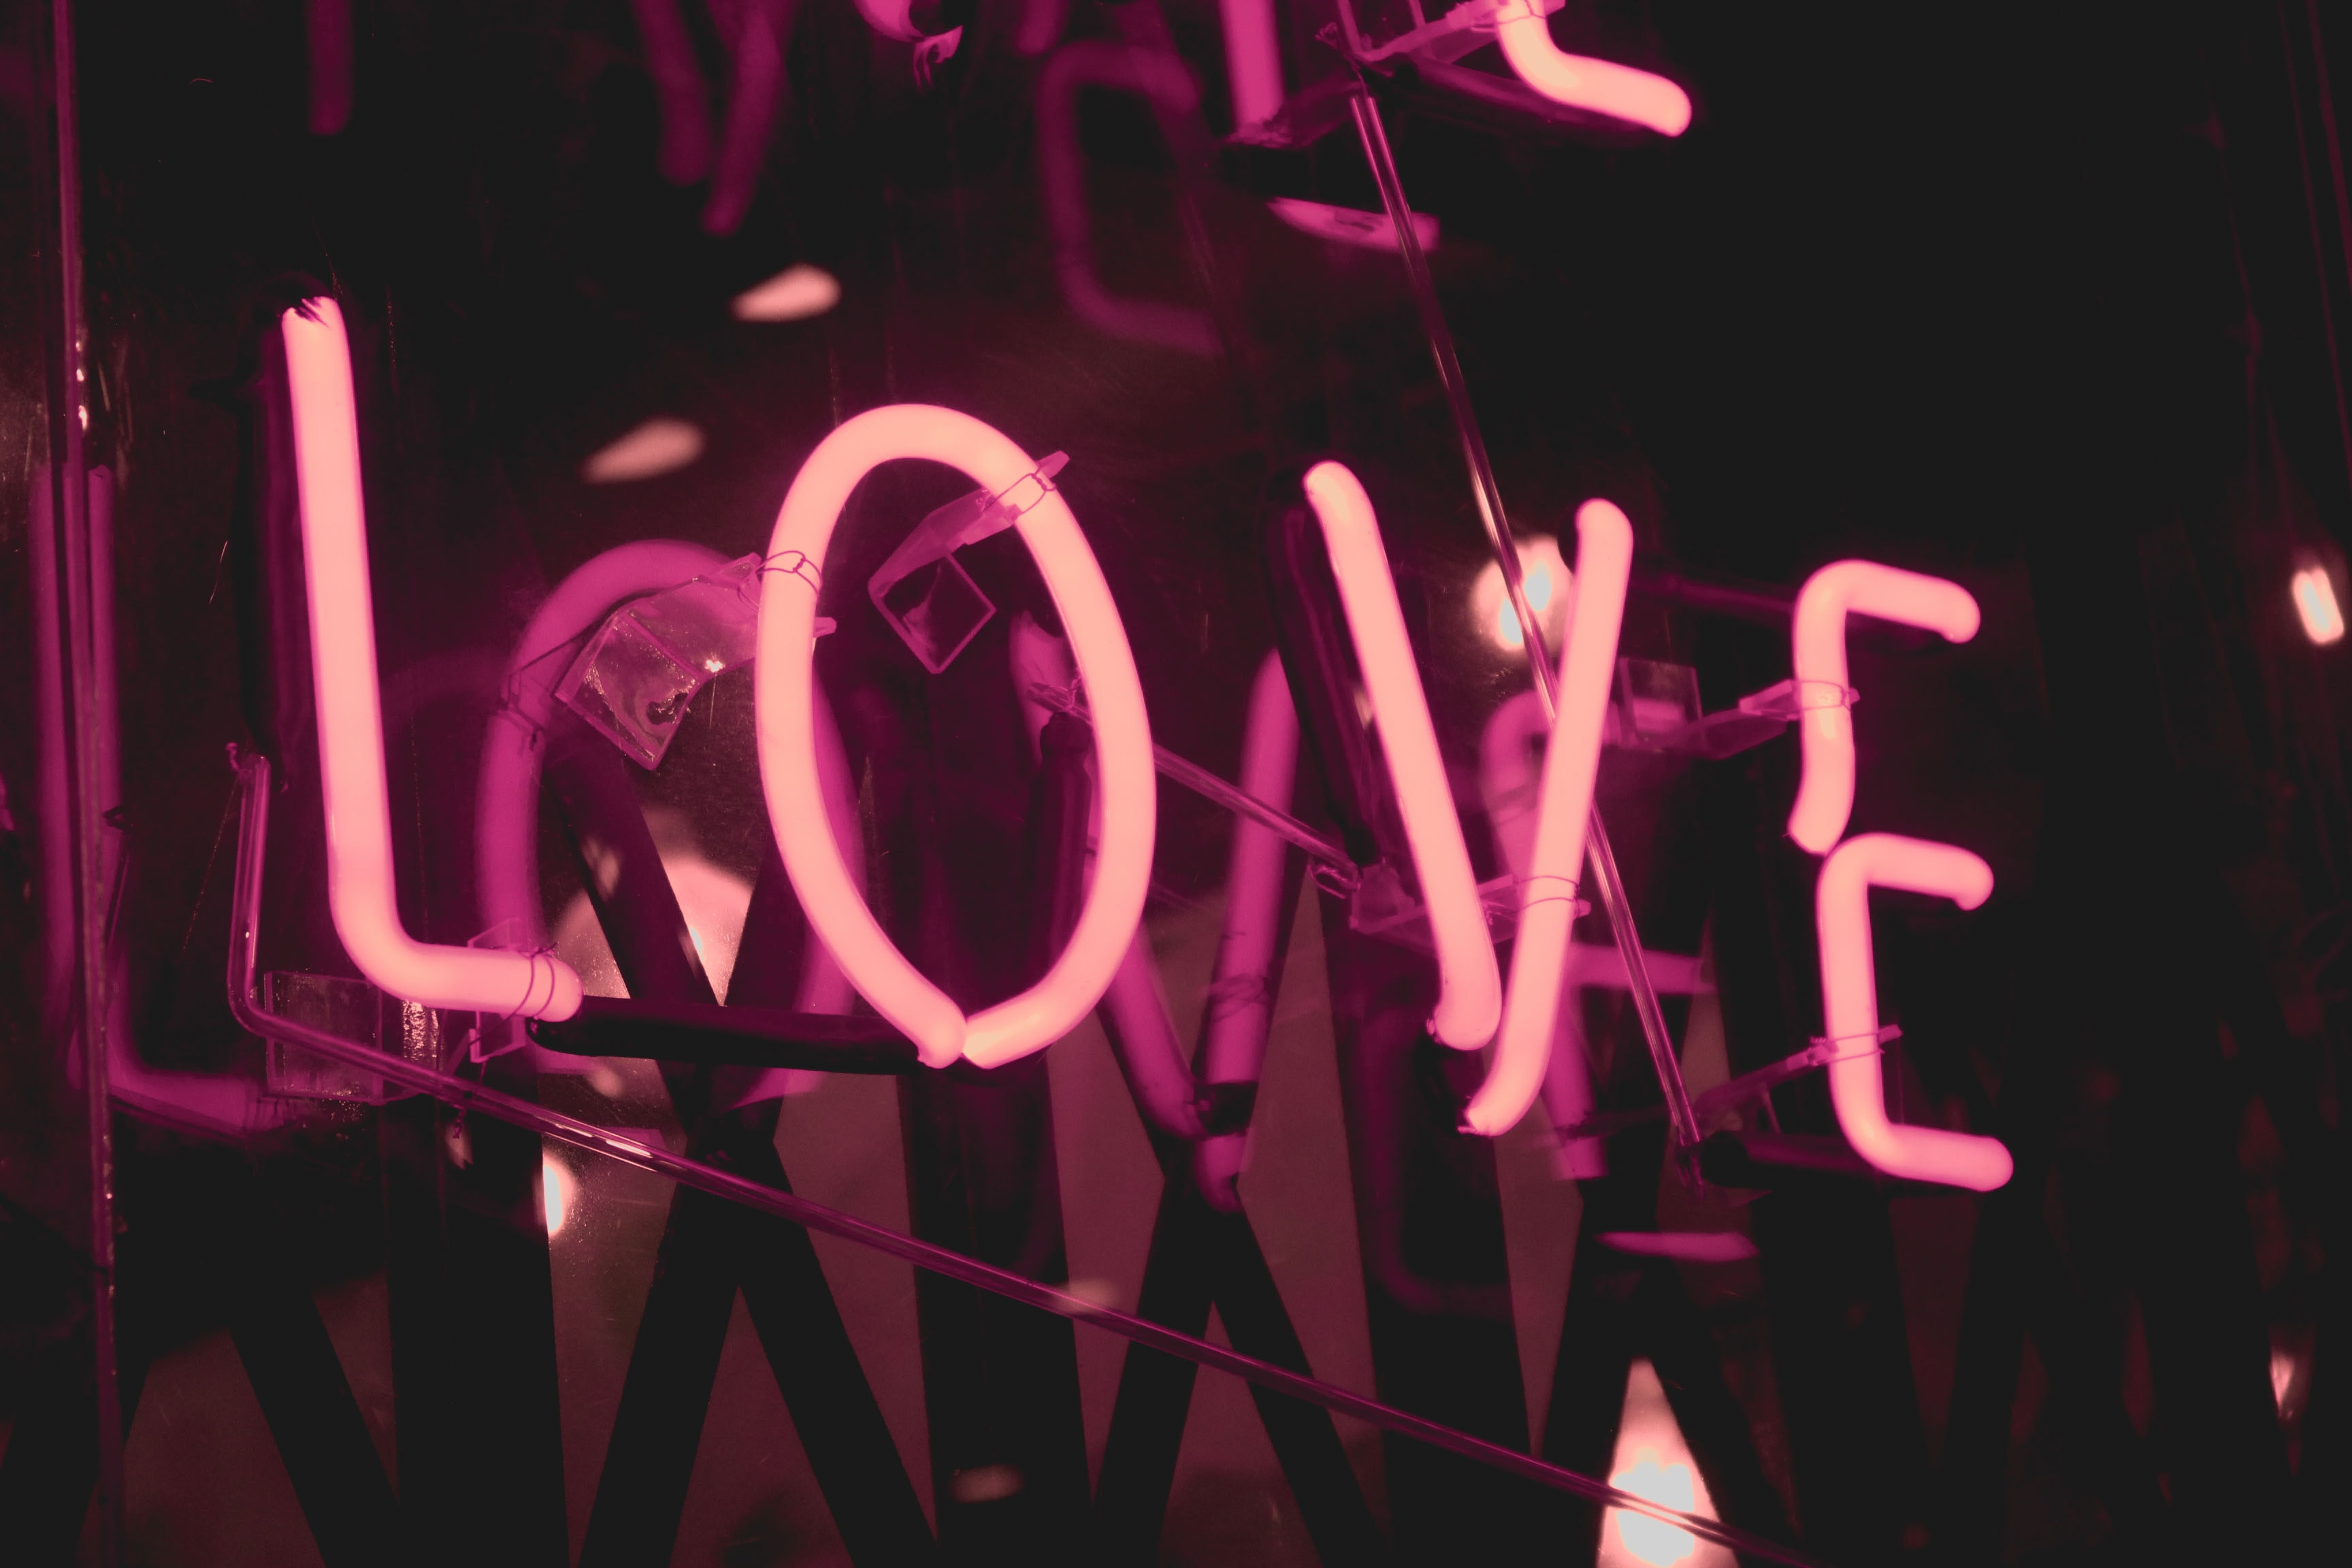 turned on pink Love neon signage